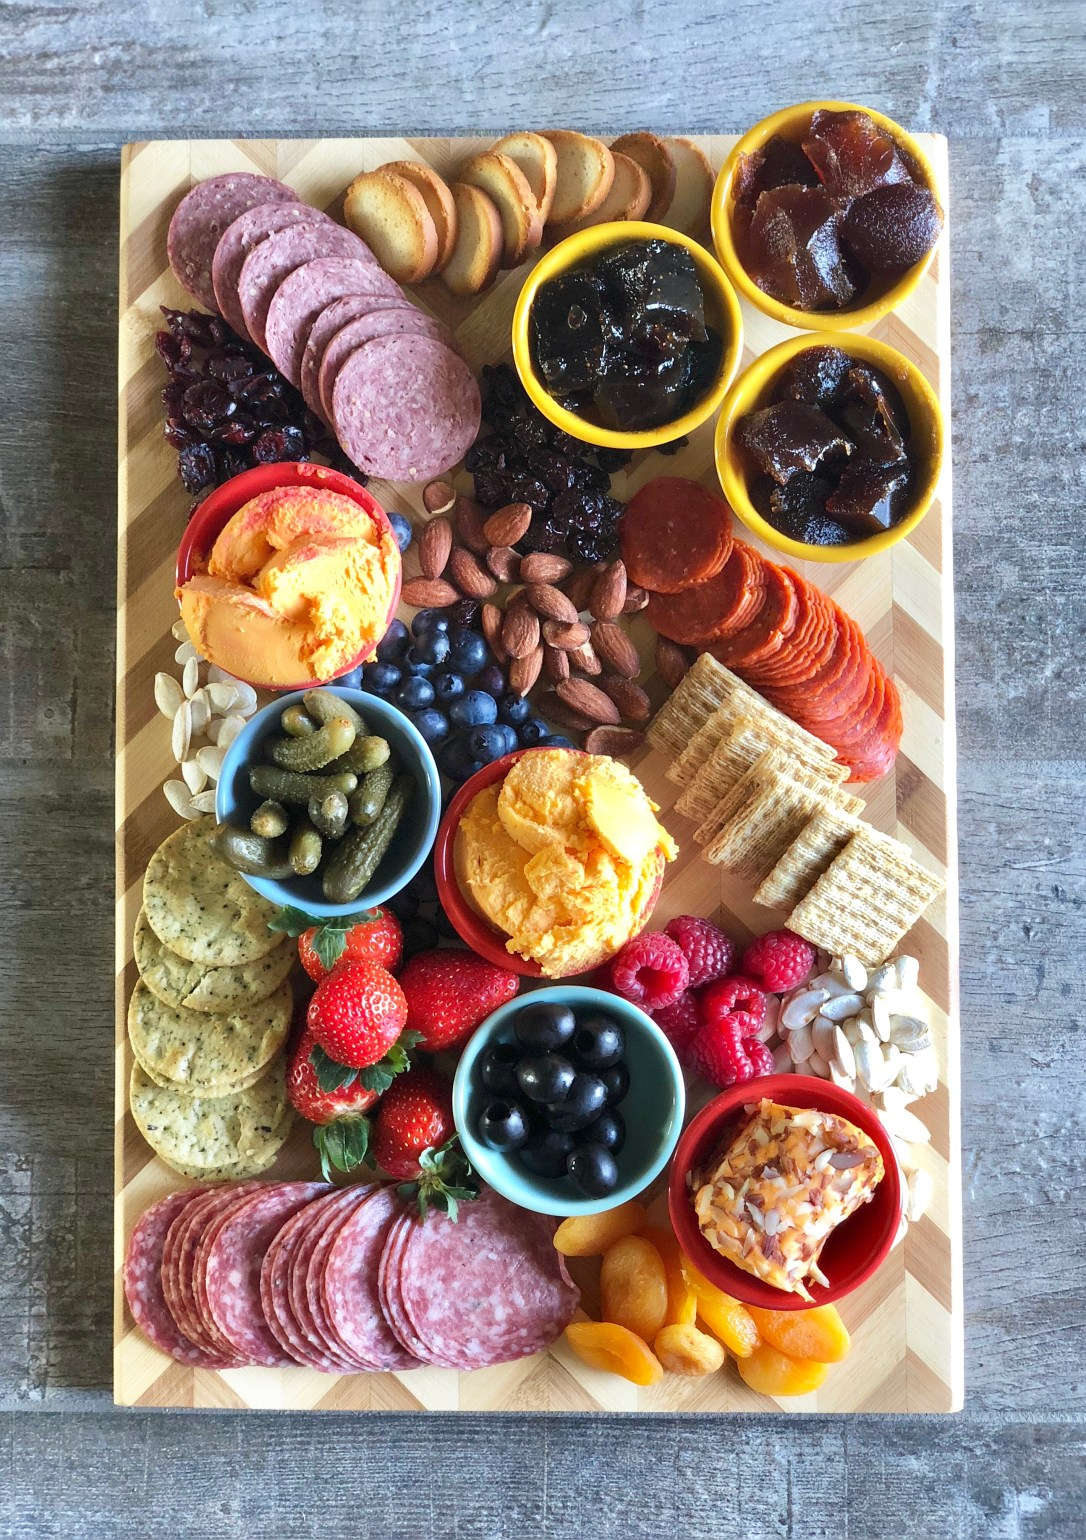 How to Make a Charcuterie and Cheese Board #kaukanua100 #ad